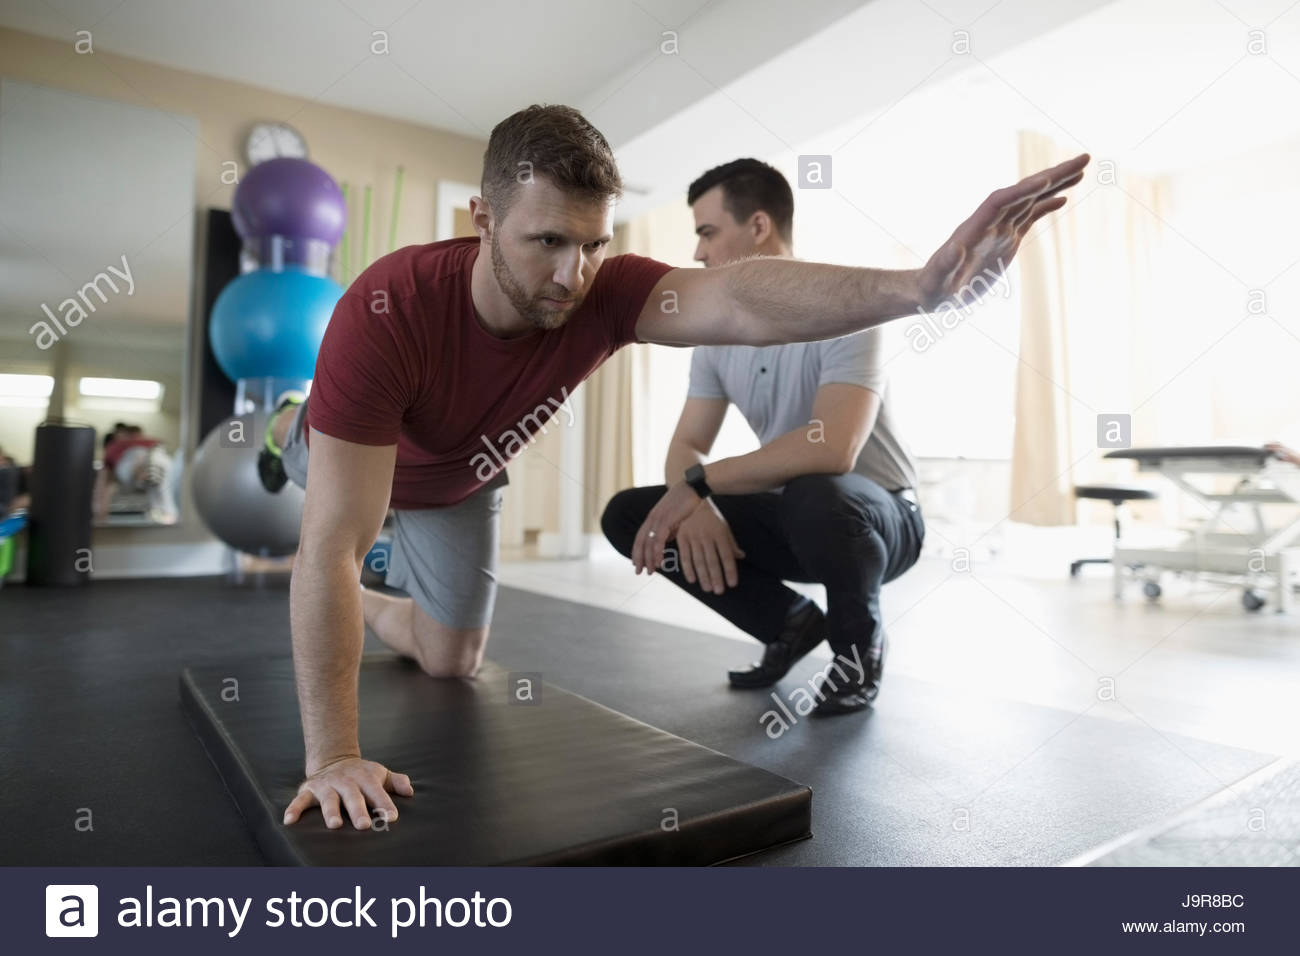 Male physiotherapist guiding client balancing in clinic gym - Stock Image